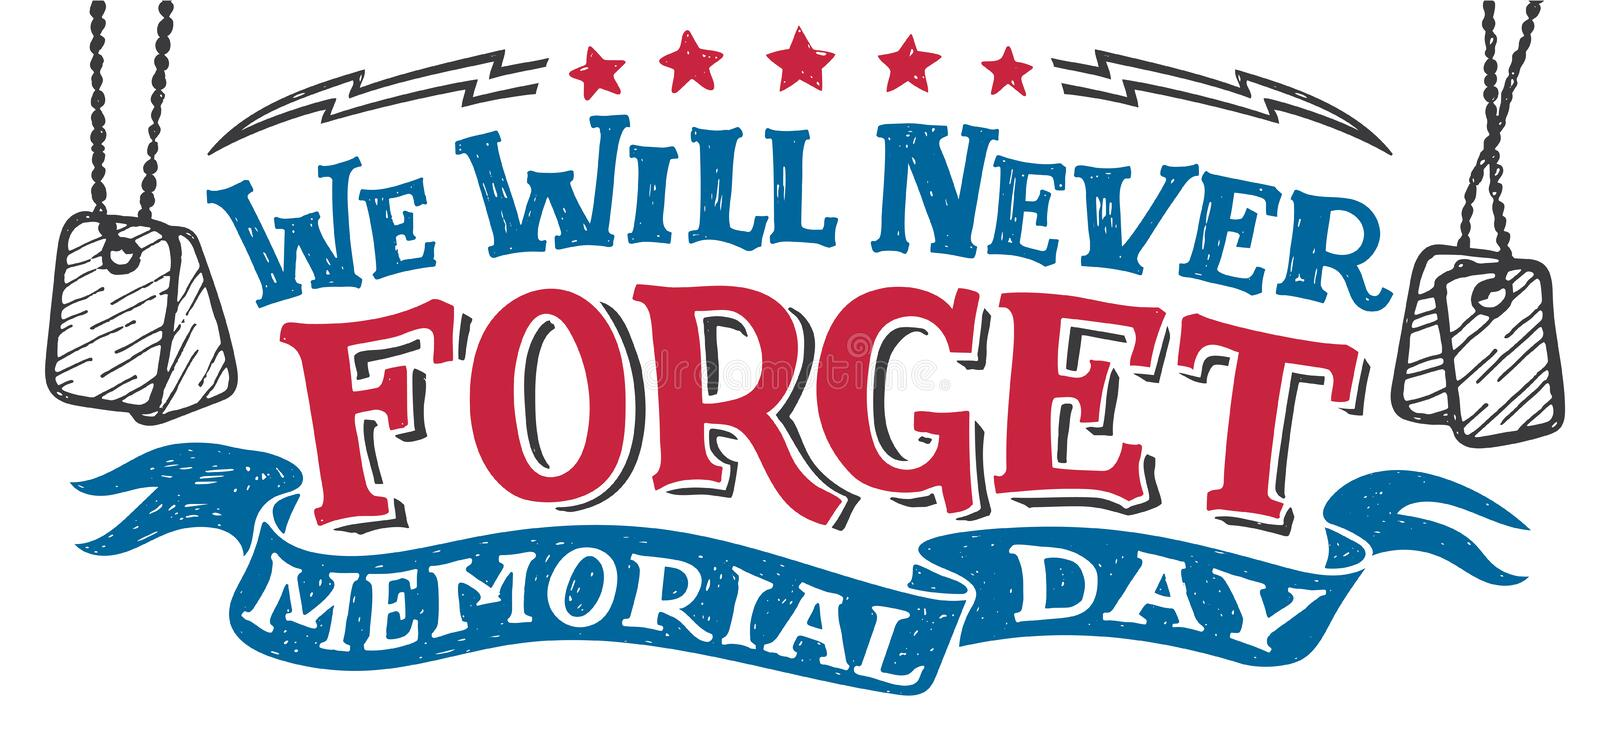 We will never forget. Memorial day sign royalty free illustration